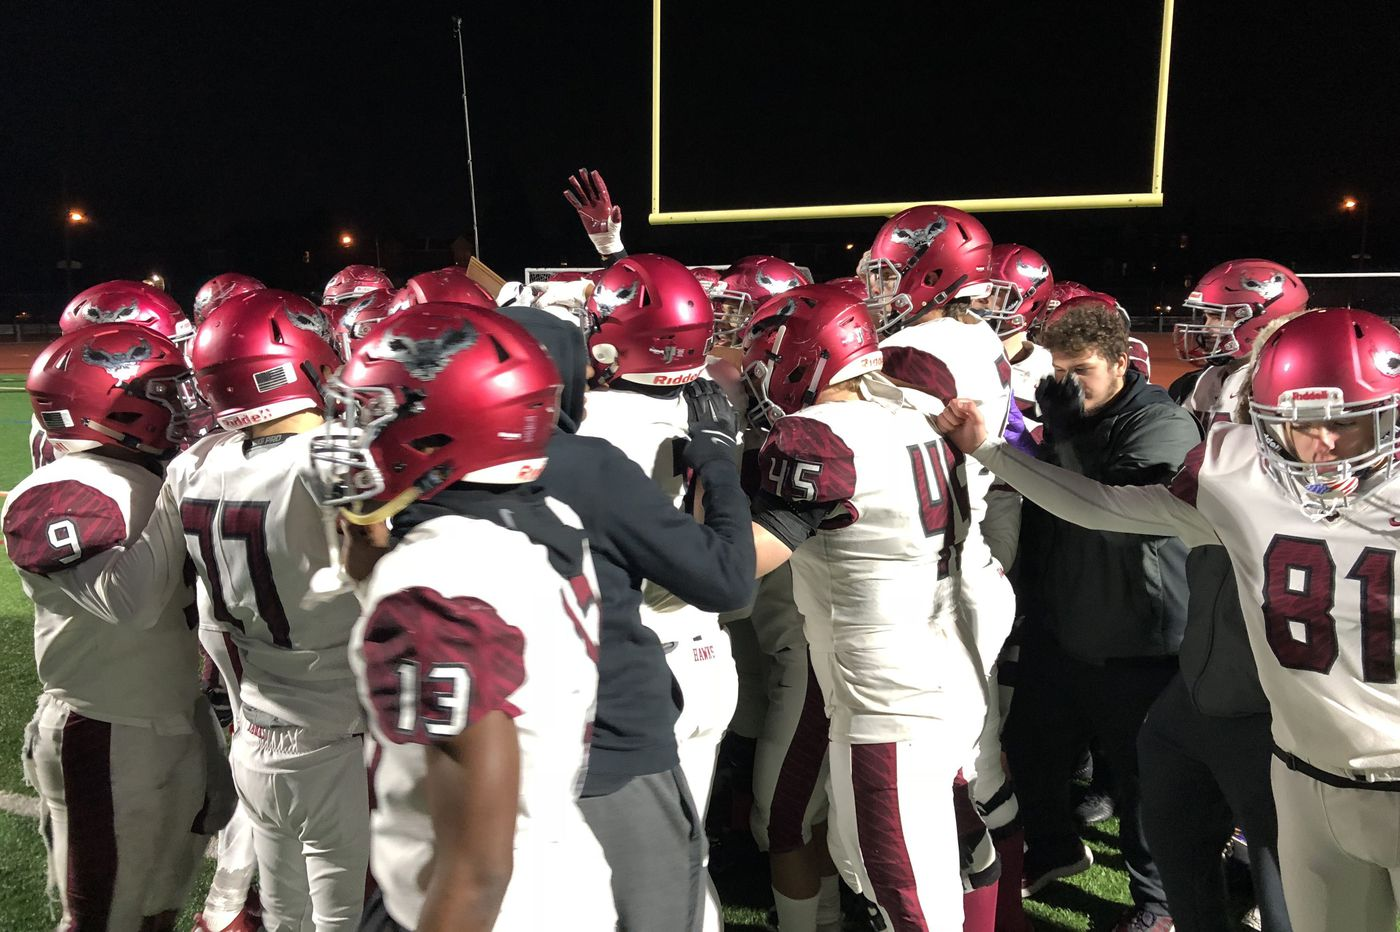 Cooper Kim, St. Joe's Prep to face Bethlehem Freedom in PIAA Class 6A football quarterfinal